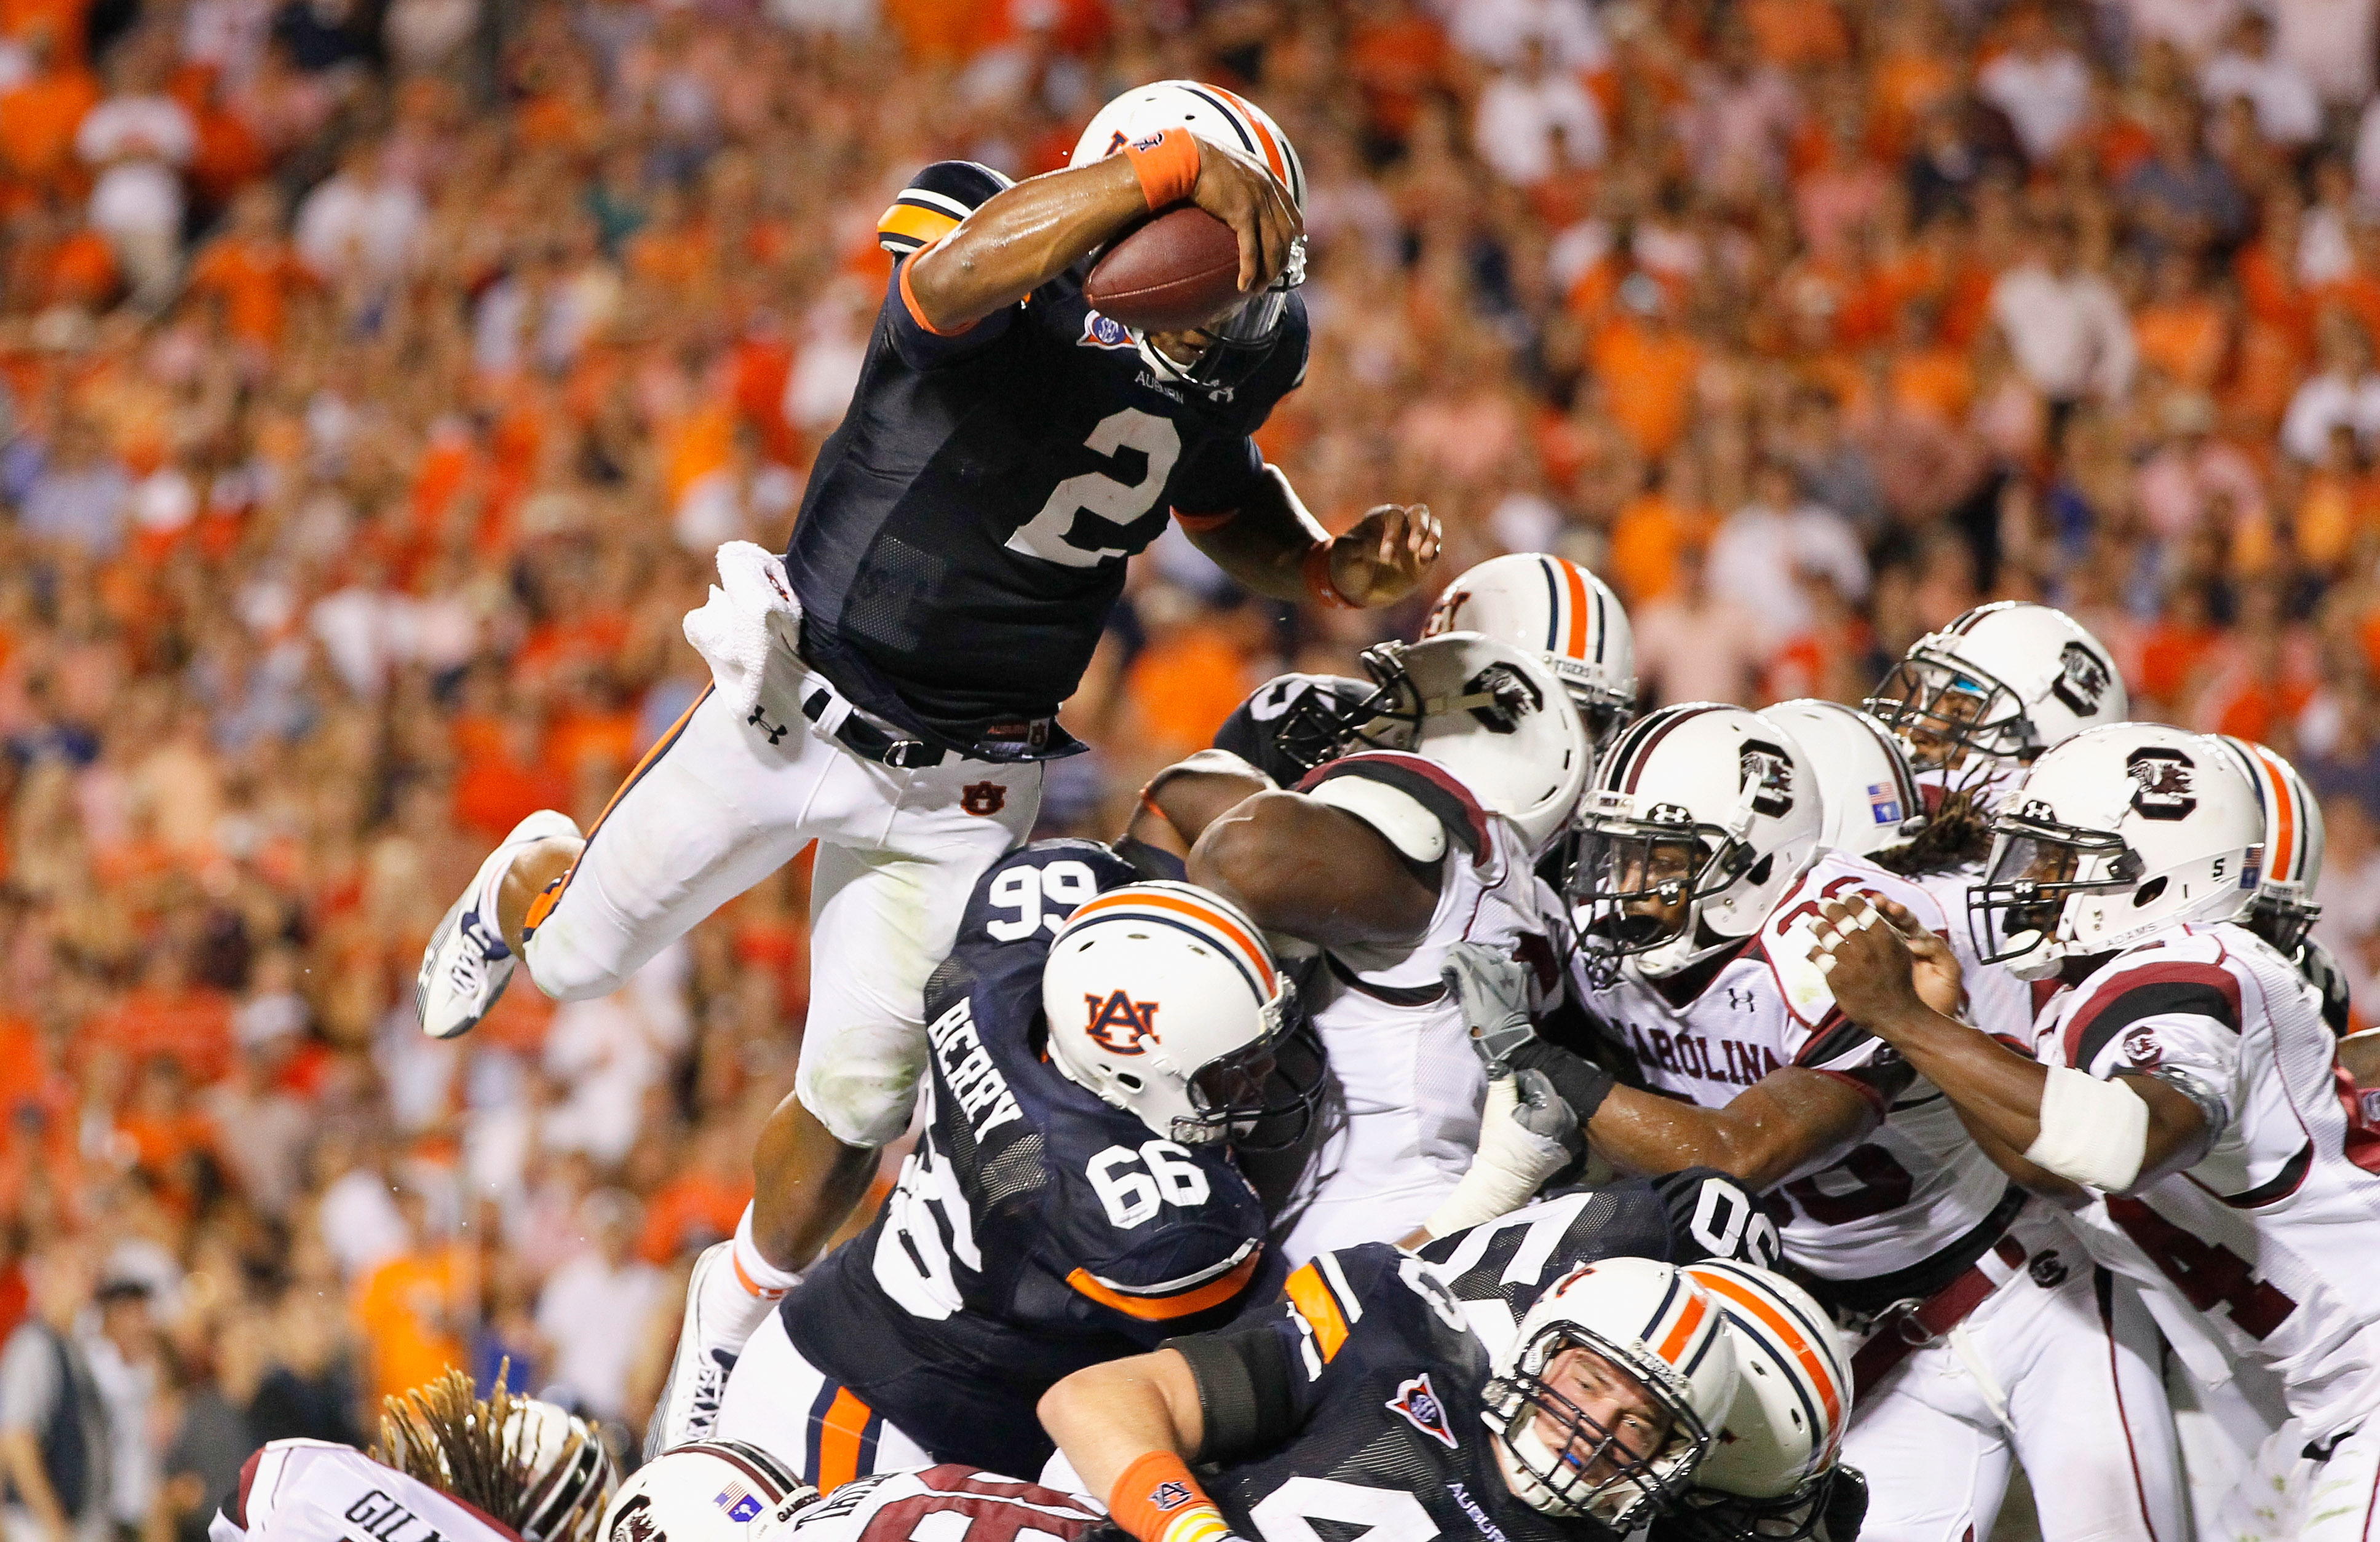 AUBURN, AL - SEPTEMBER 25:  Quarterback Cameron Newton #2 of the Auburn Tigers dives across the offensive and defensive lines for a touchdown against the South Carolina Gamecocks before it was called back for a false start at Jordan-Hare Stadium on Septem